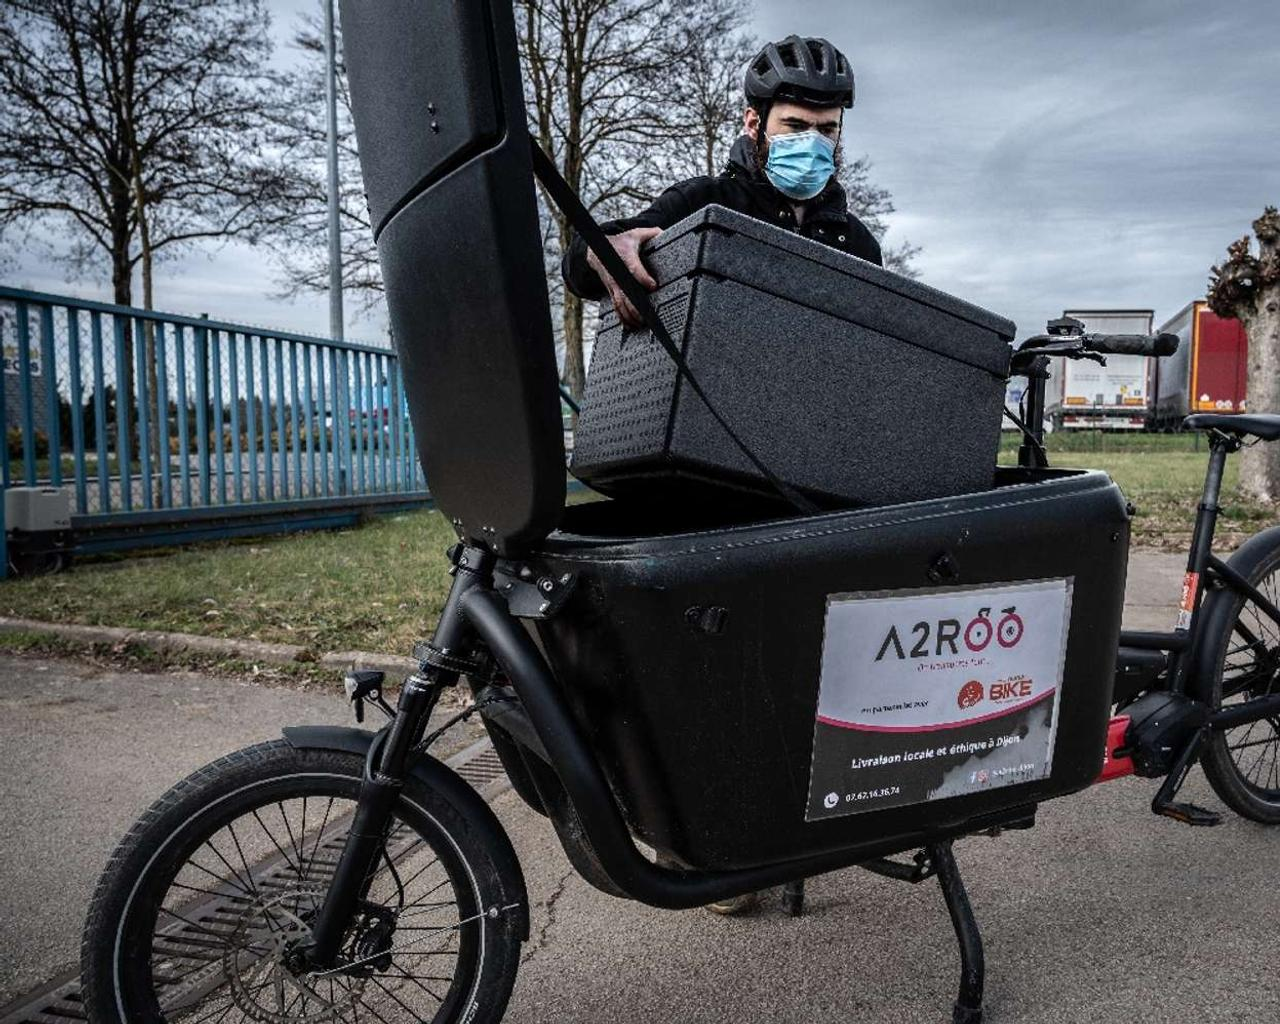 Deliveroo to hand riders up to £10,000 in UK float